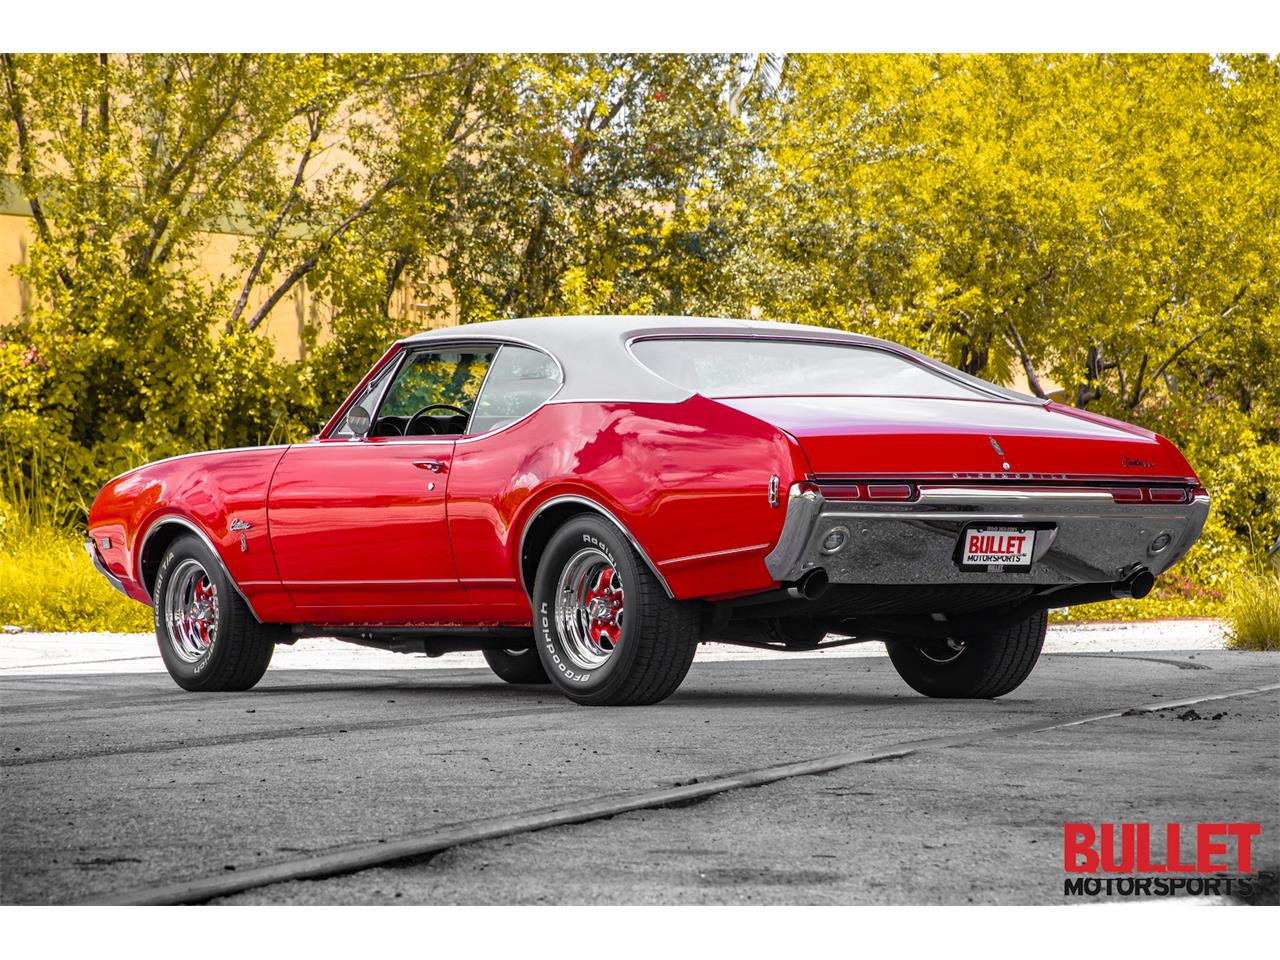 Large Picture of Classic '68 Cutlass Supreme - $30,000.00 - PZS9